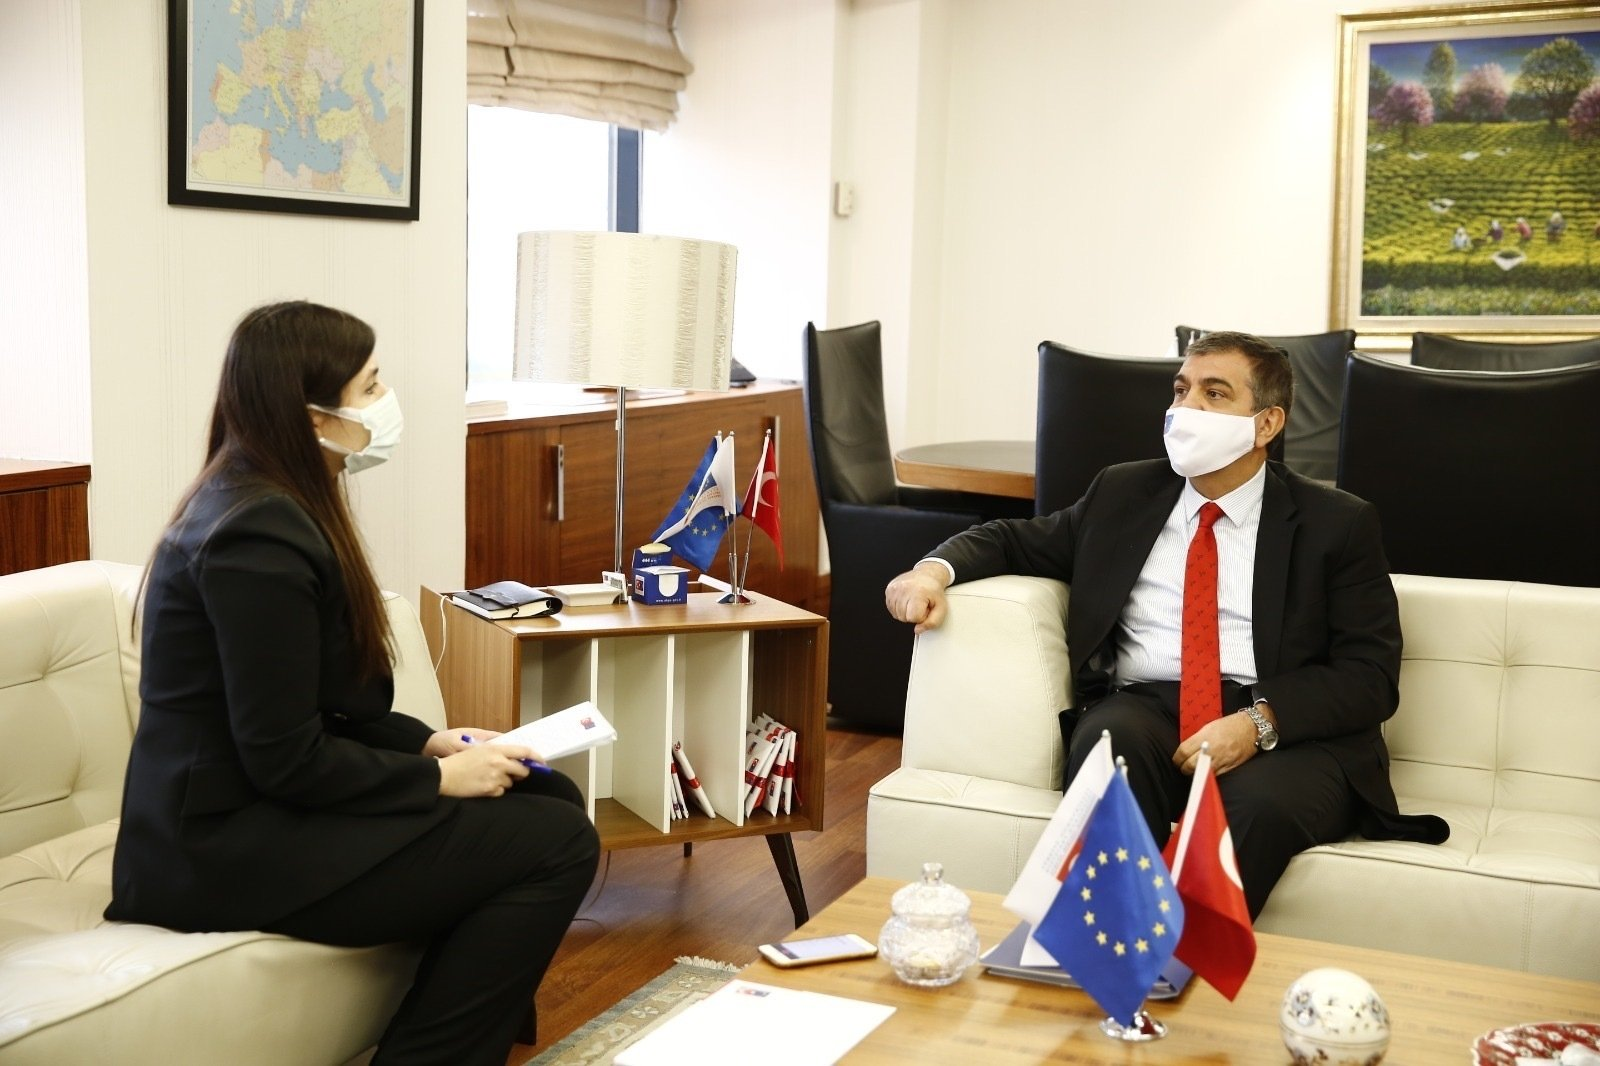 Deputy Foreign Minister Faruk Kaymakcı and Daily Sabah's Dilara Aslan during an interview at the EU affairs directorate in the capital Ankara, Dec. 22, 2020. (Courtesy of the Foreign Ministry)